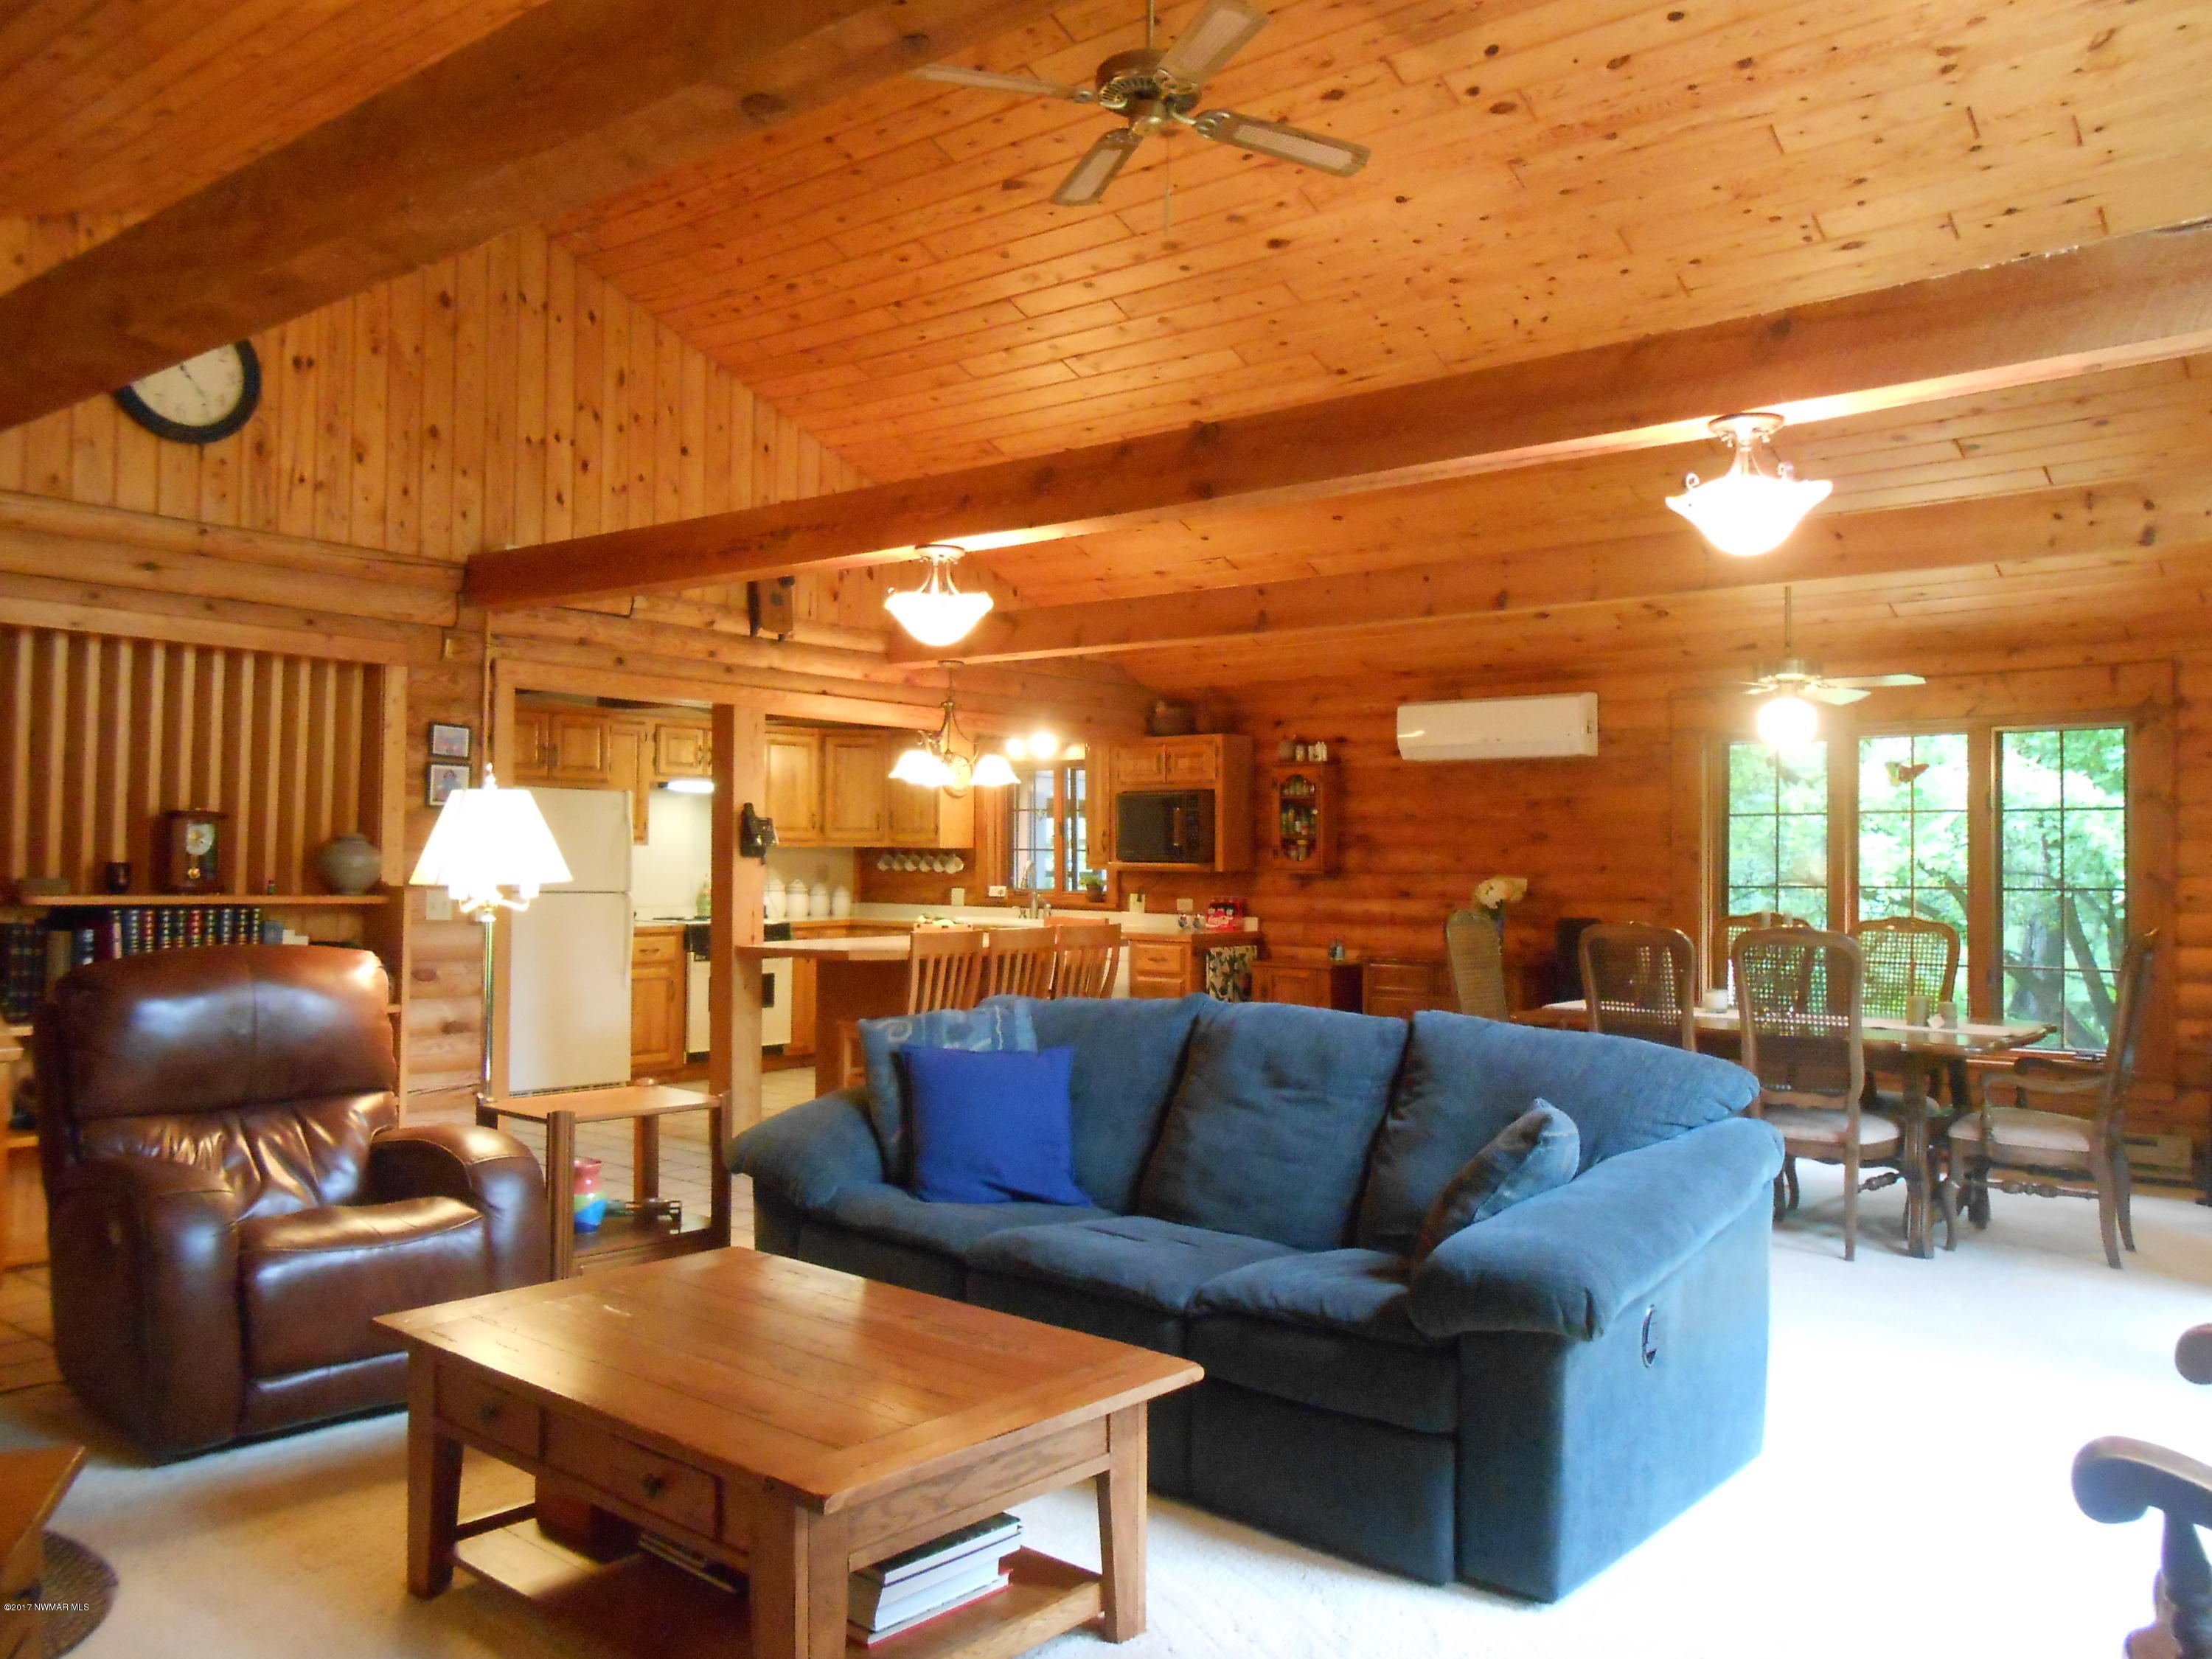 Treasure living in this log home!